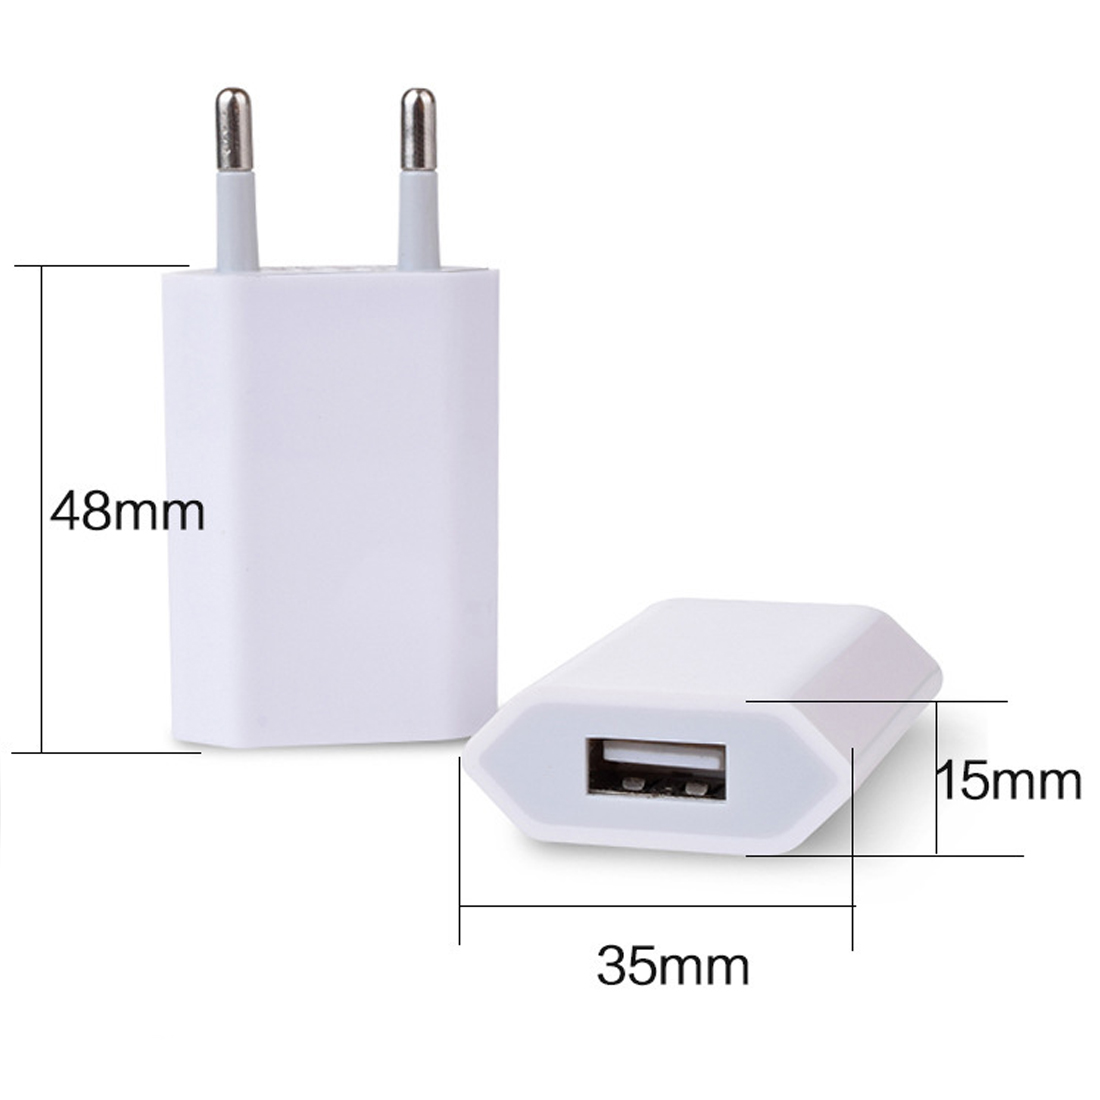 Universal EU Plug USB Power Home Wall Adapter Travel Charging For iPhone X 8 7 6 6s Plus iPad